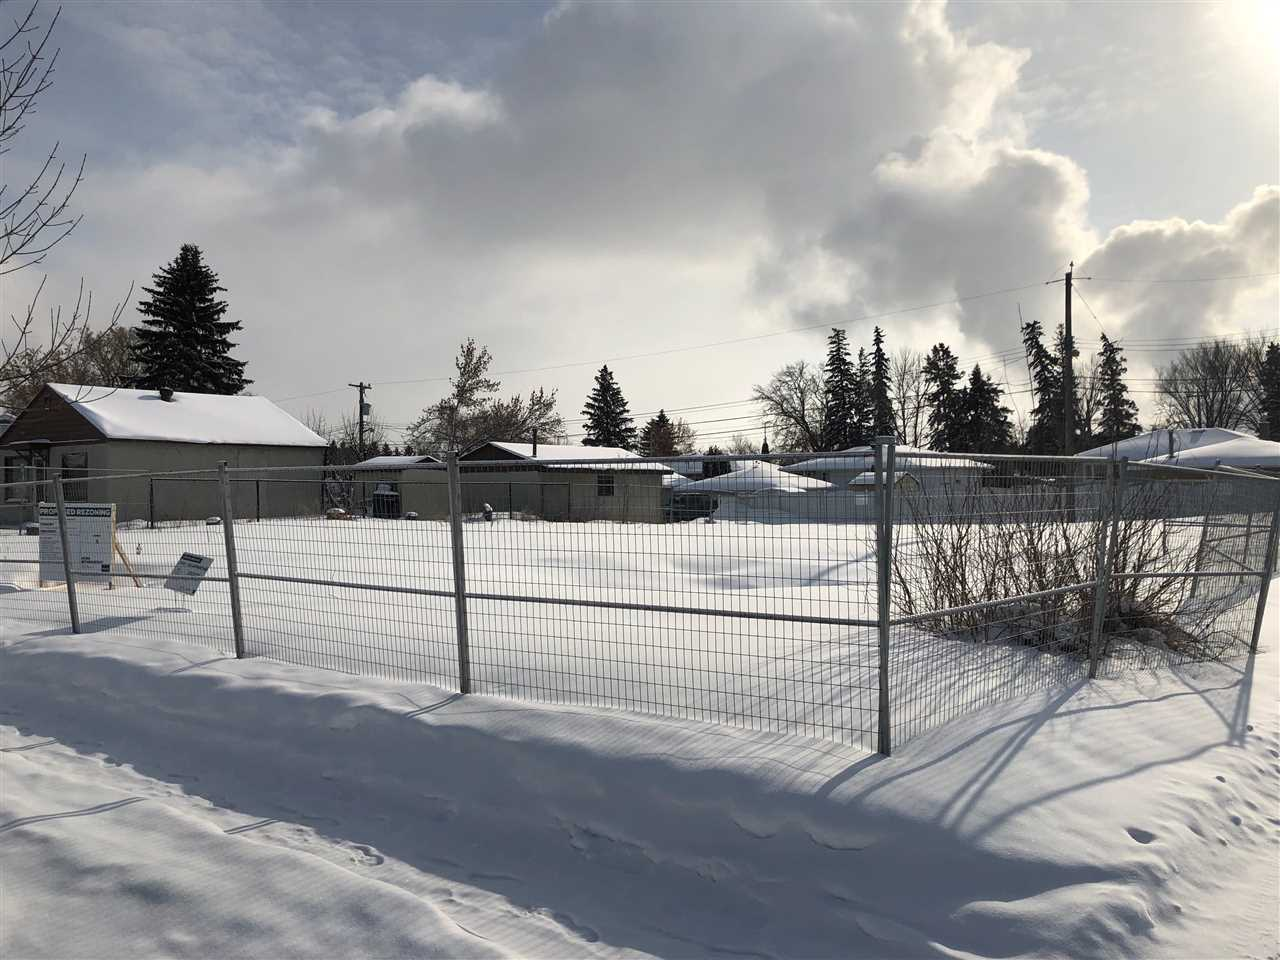 Looking to build your dream home!? Check out this awesome infill lot in Beverly Heights next to ADA BOULEVARD! Short walk to trails accessing Rundle Park on the North bank of the river. Enjoy a wide range of facilities and features such as sports fields, picnic sites, toboggan hills and an IceWay in the winter months. 25ft x 120ft RF1 lot. Purchase the lot as is or have us complete the build for you. Previous models and show home available for viewing. GST will be charged and is INCLUDED in the list price. 3653 106 AV and 3649 106 AV are also listed for sale and are both 25 ft x 120 ft in size as well.